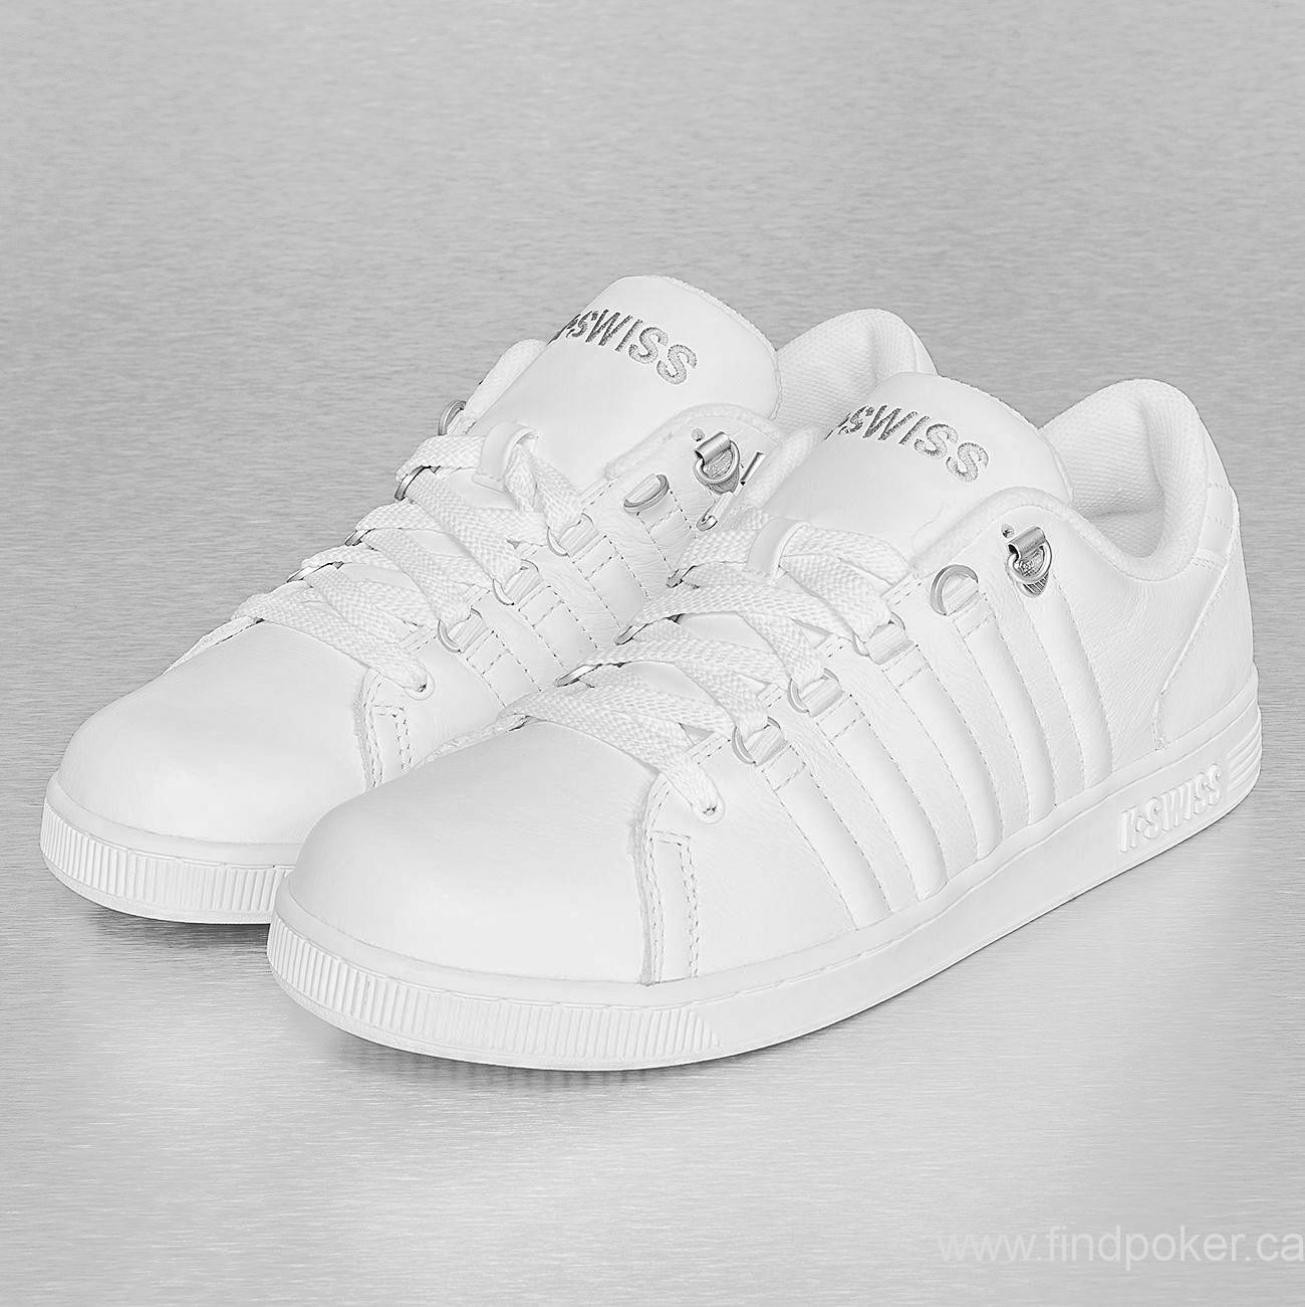 13ac31395 ... really care for brand shoes like that but as for Adidas customers they  are all people who like that style and who would only wear that particular  brand.